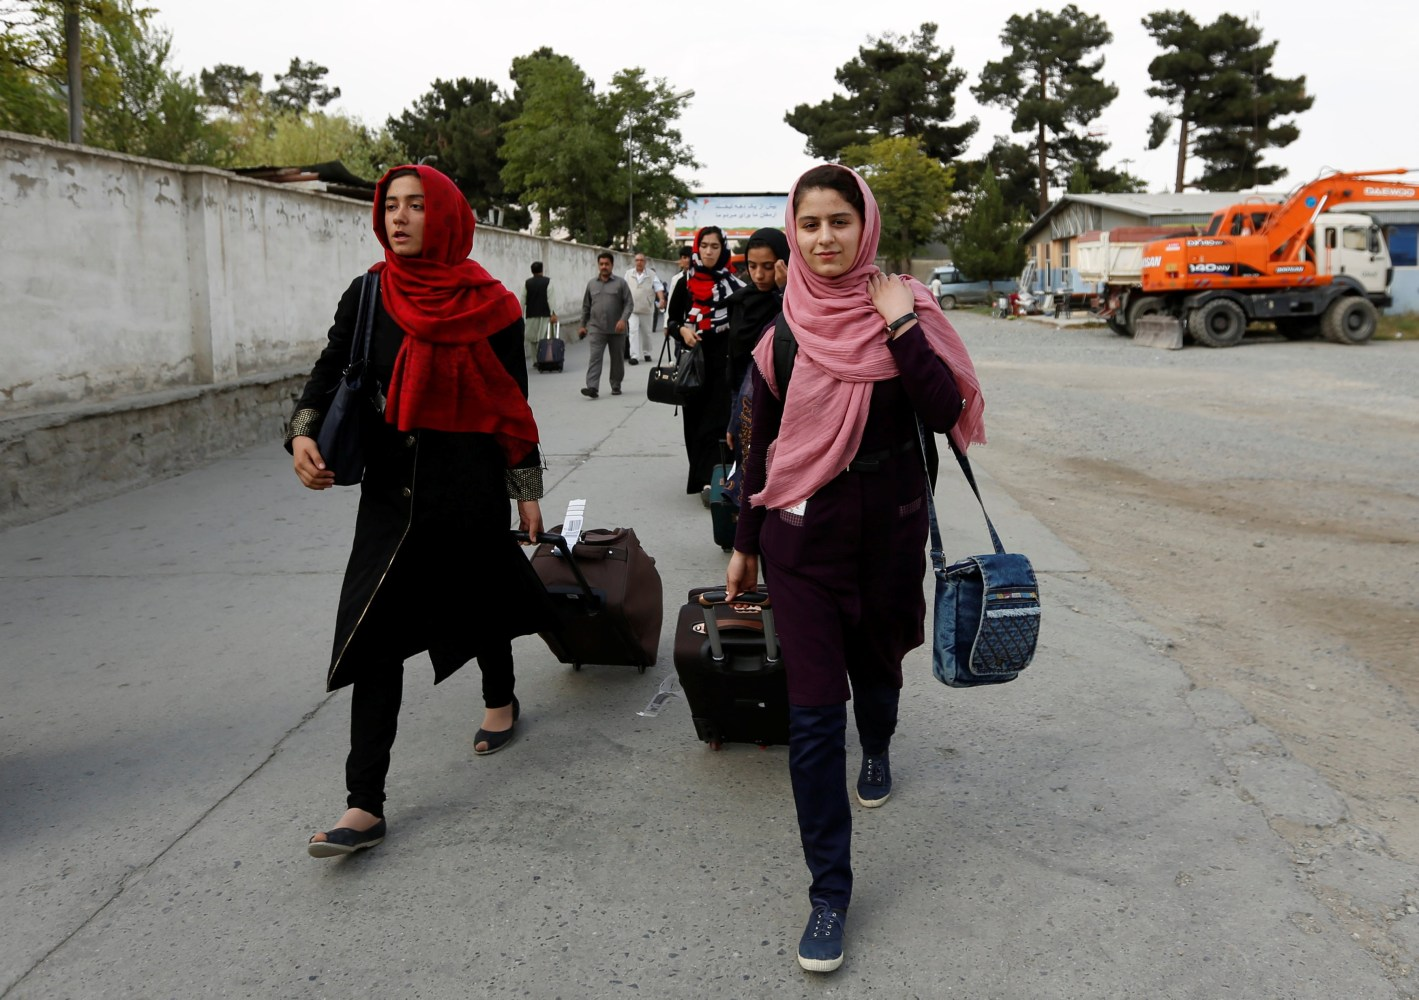 Female Afghan Robotics Team Gets Trump Assist